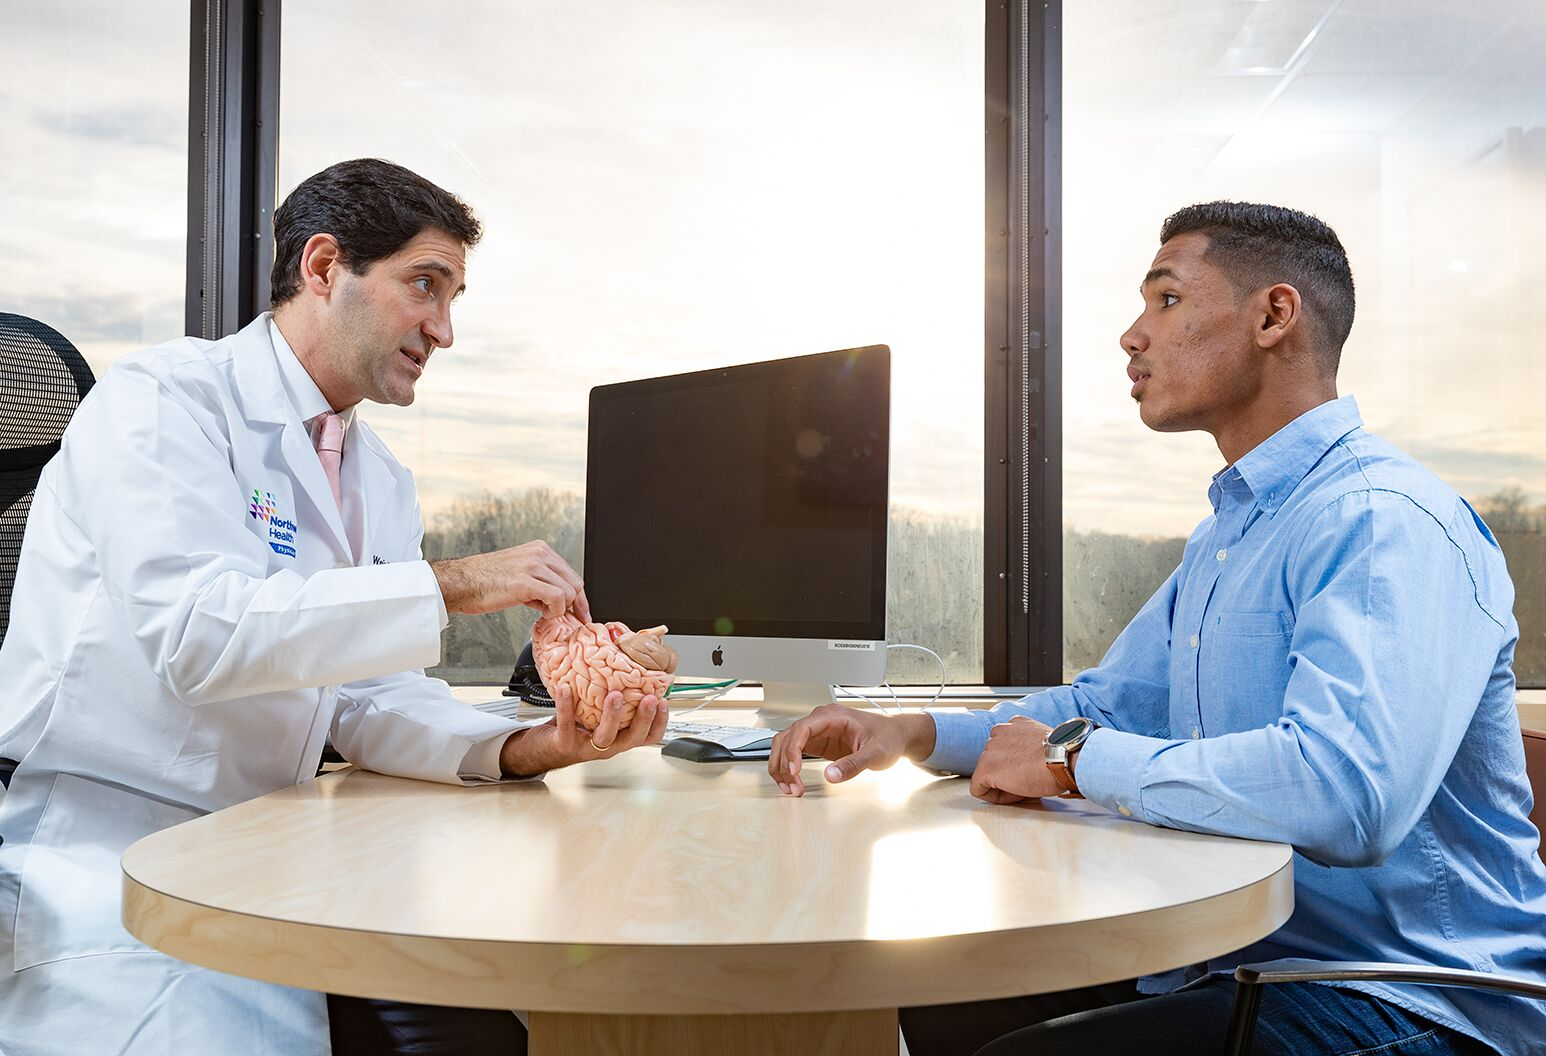 A doctor sitting at a desk holding a model of a brain while explaining something to a person sitting across the desk.